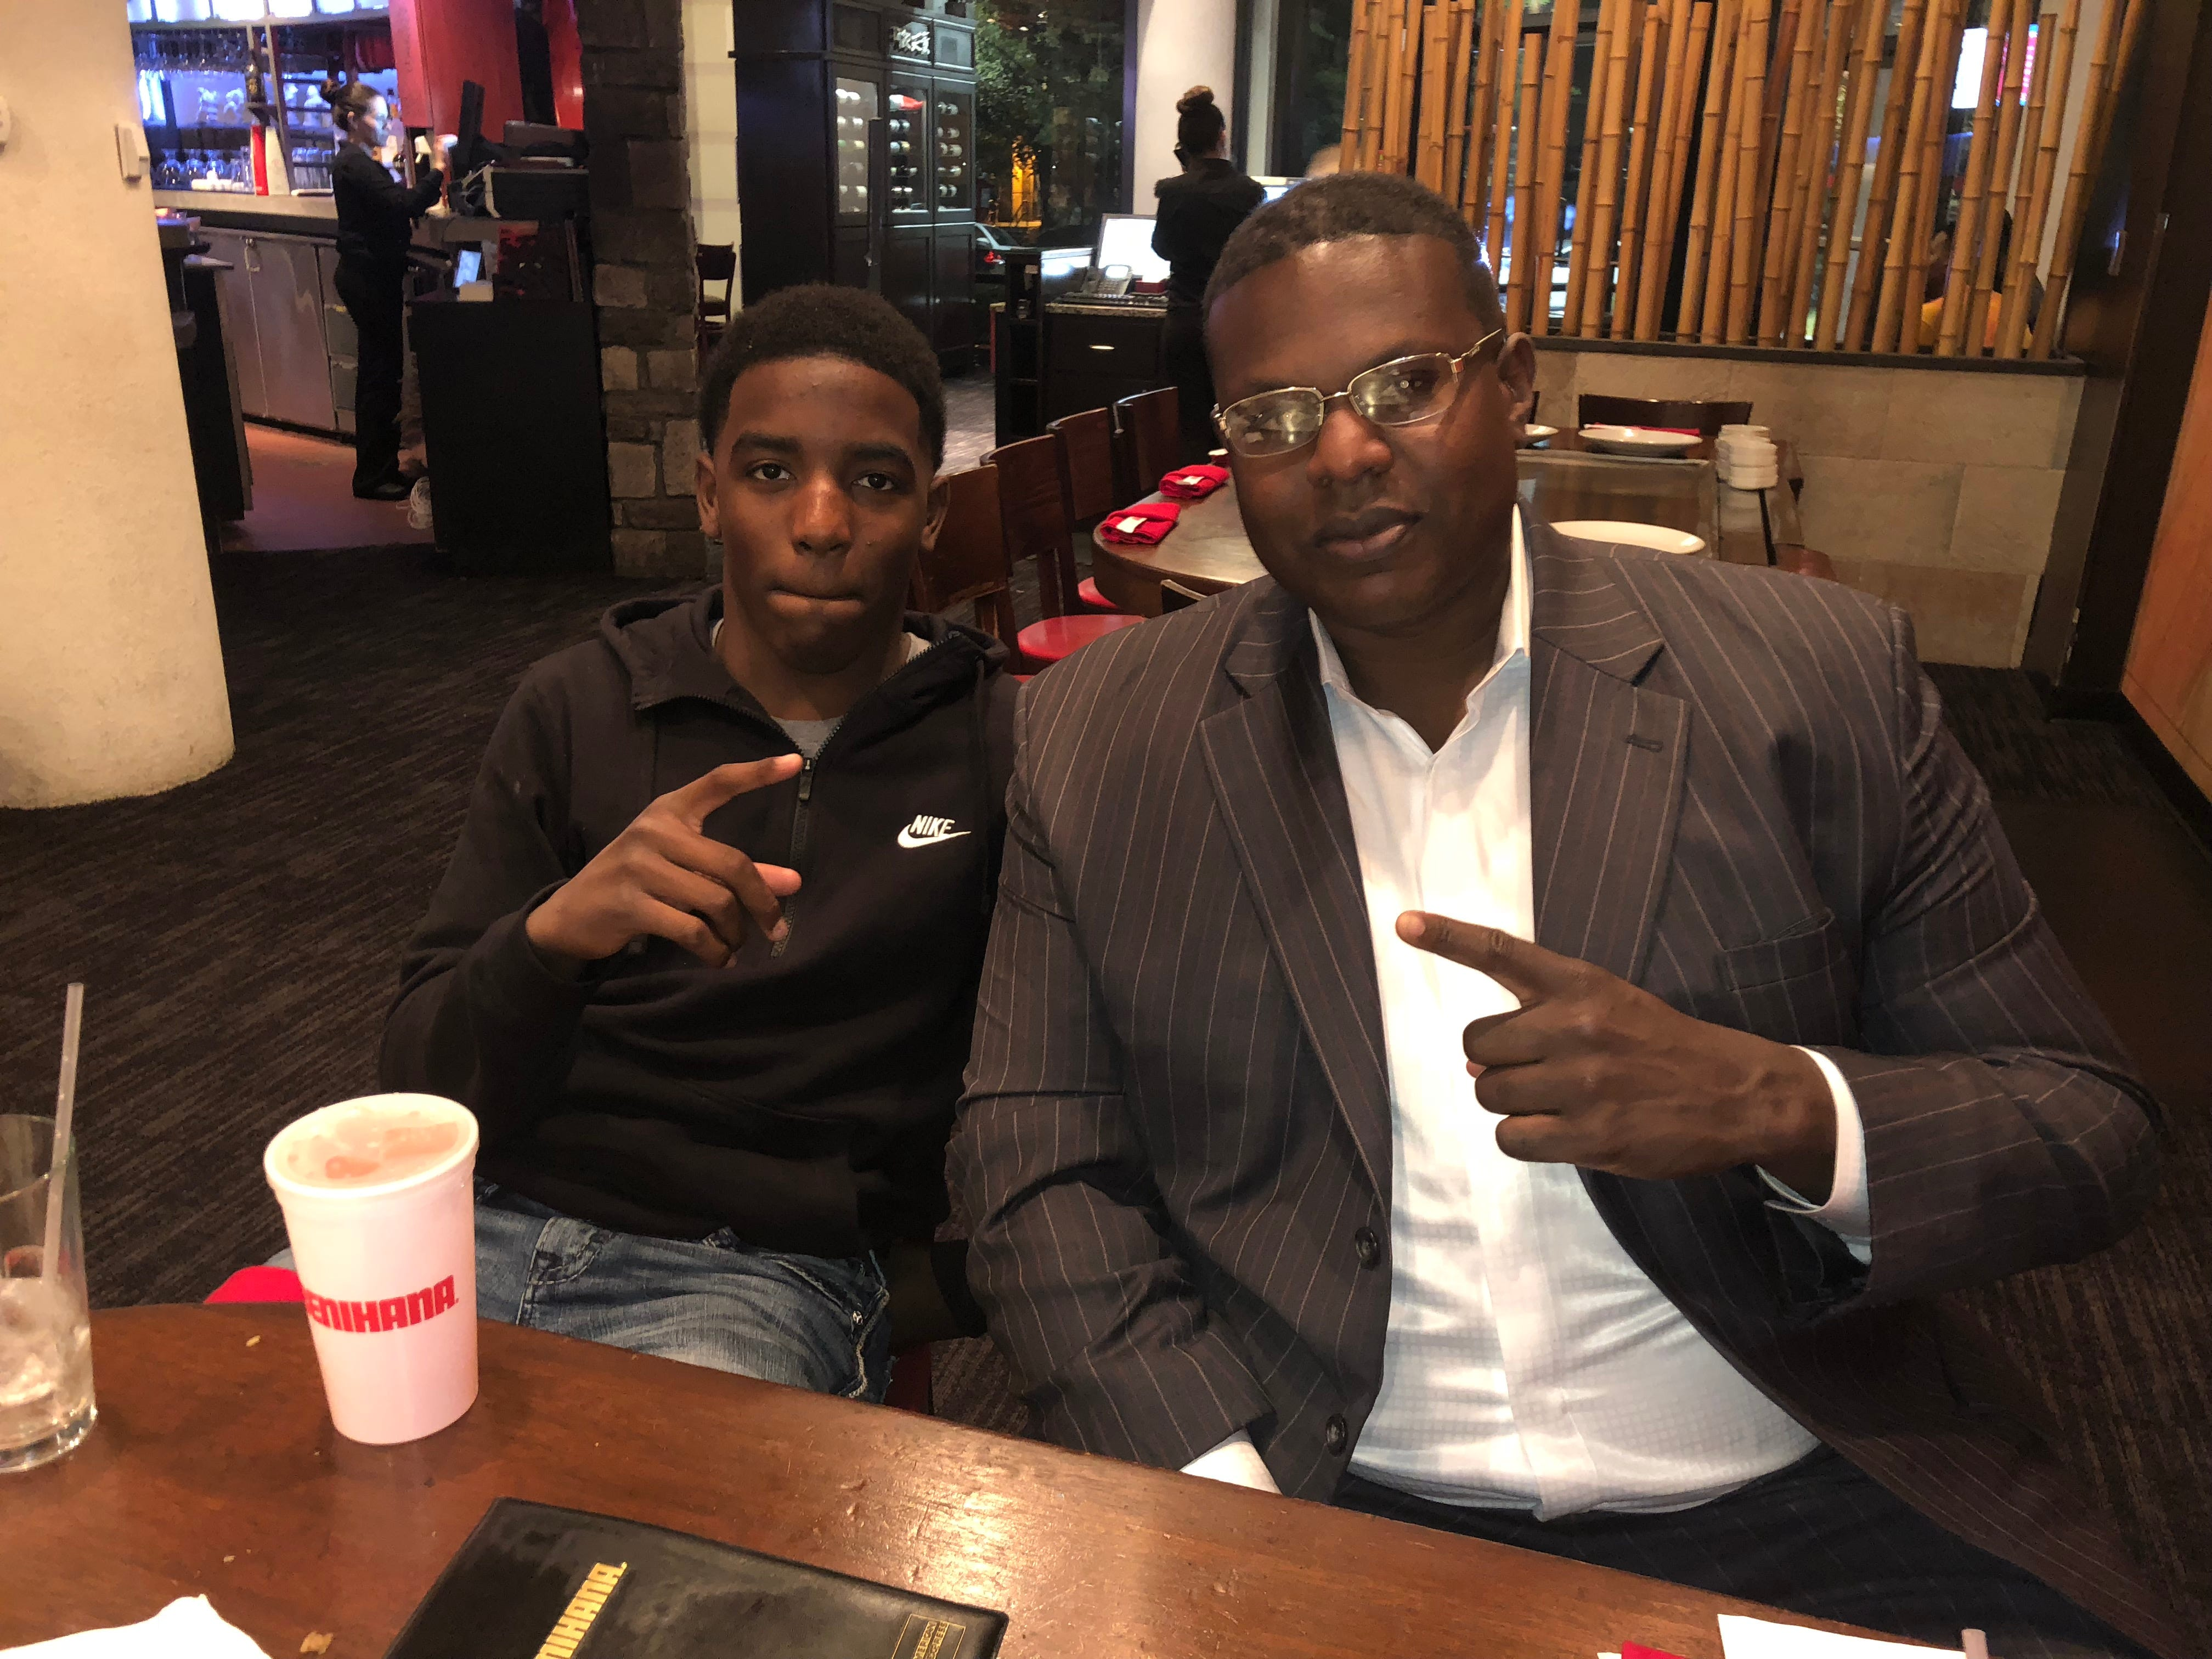 Alfred Washington makes impact on Memphis youth through mentoring   The Commercial Appeal